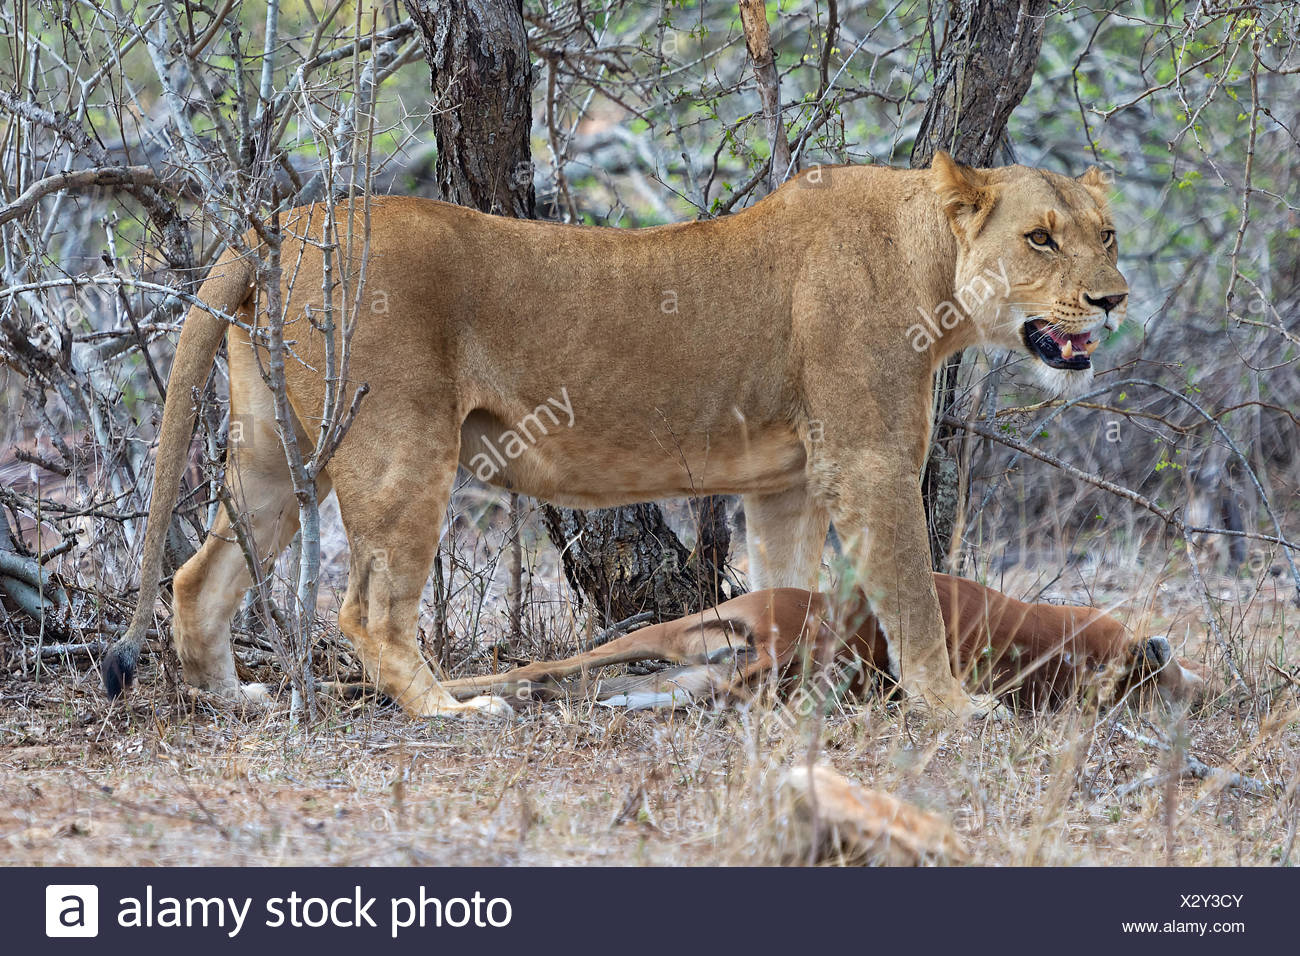 lioness has just killed an impala - Stock Image